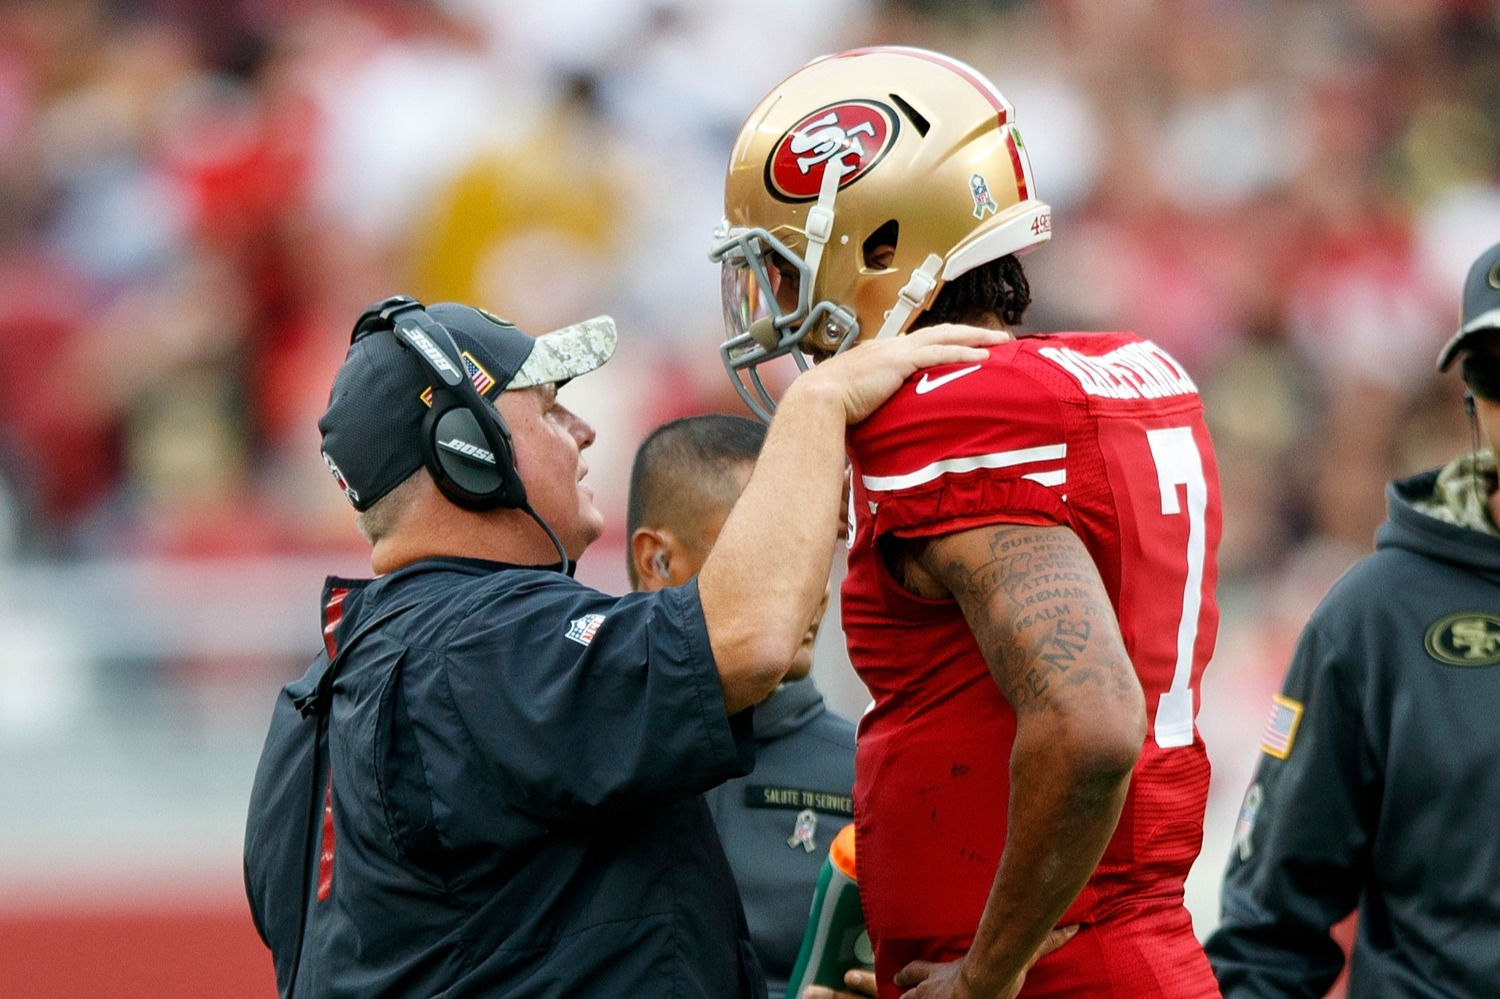 Chip Kelly supported Colin Kaepernick after the 49ers QB took a knee during the national anthem in 2016.